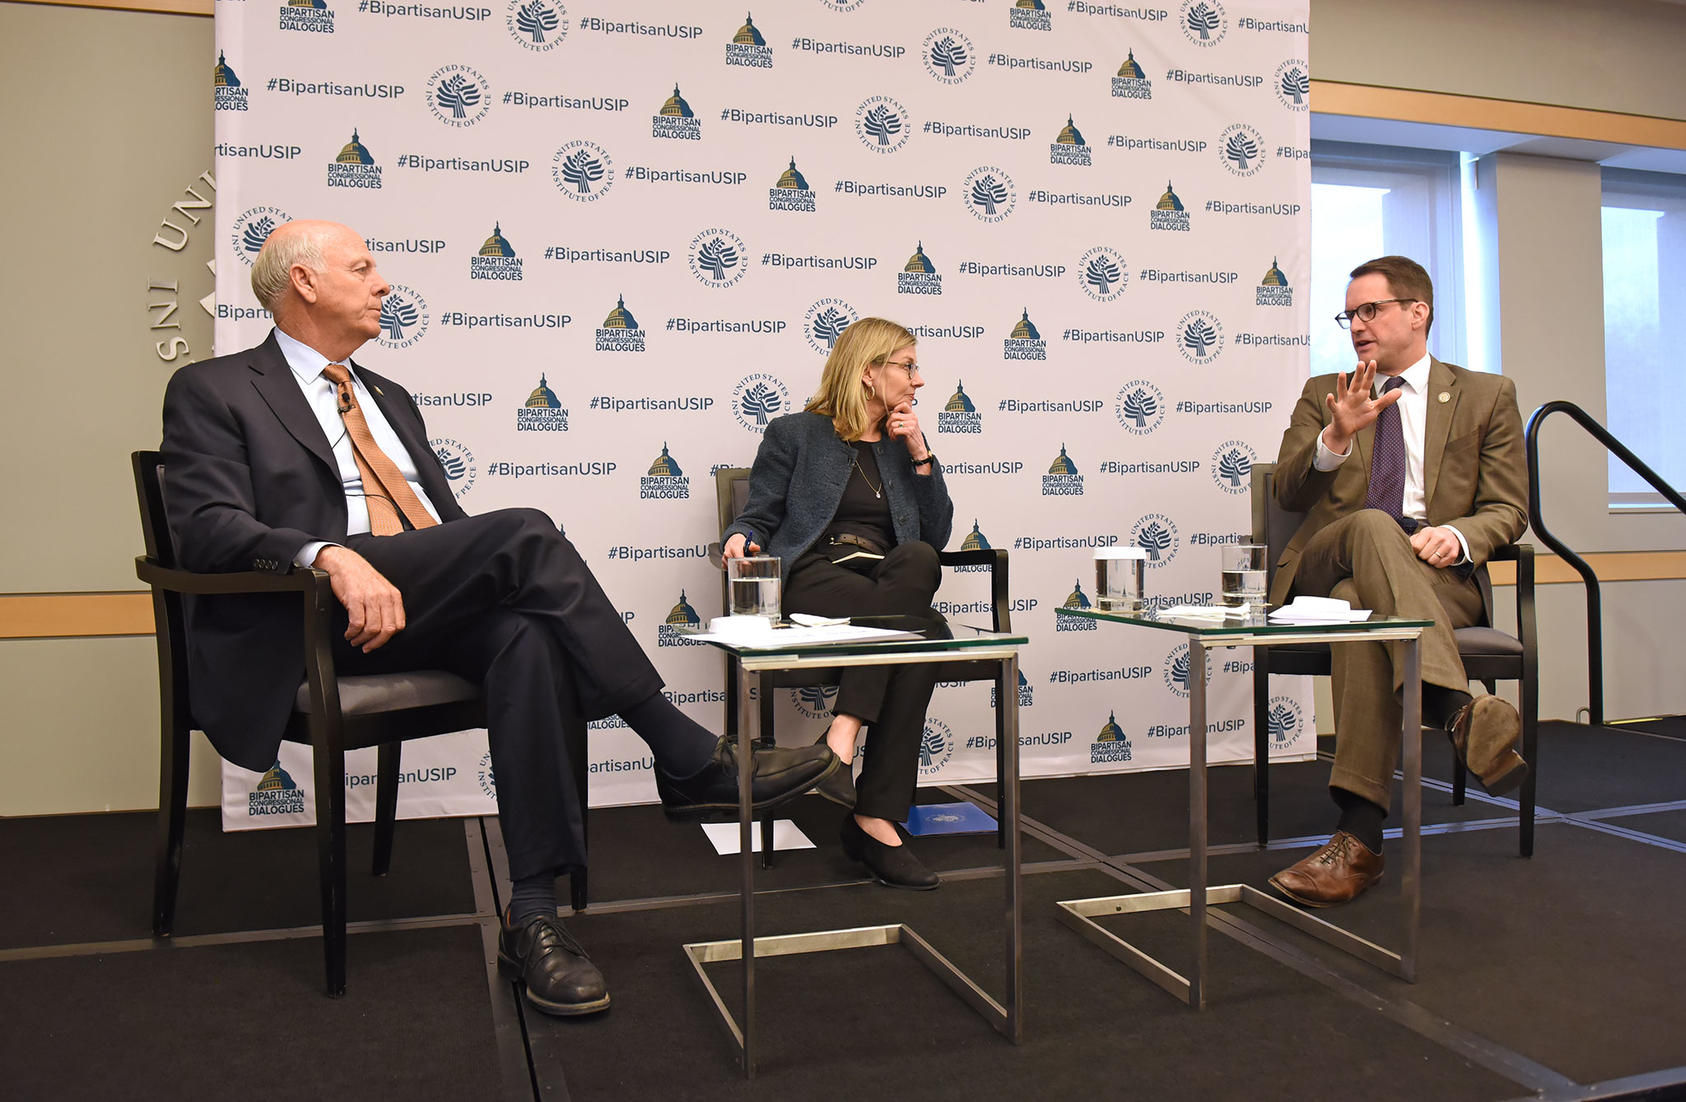 Rep. Steve Pearce, Nancy Lindborg, Rep. Jim Himes